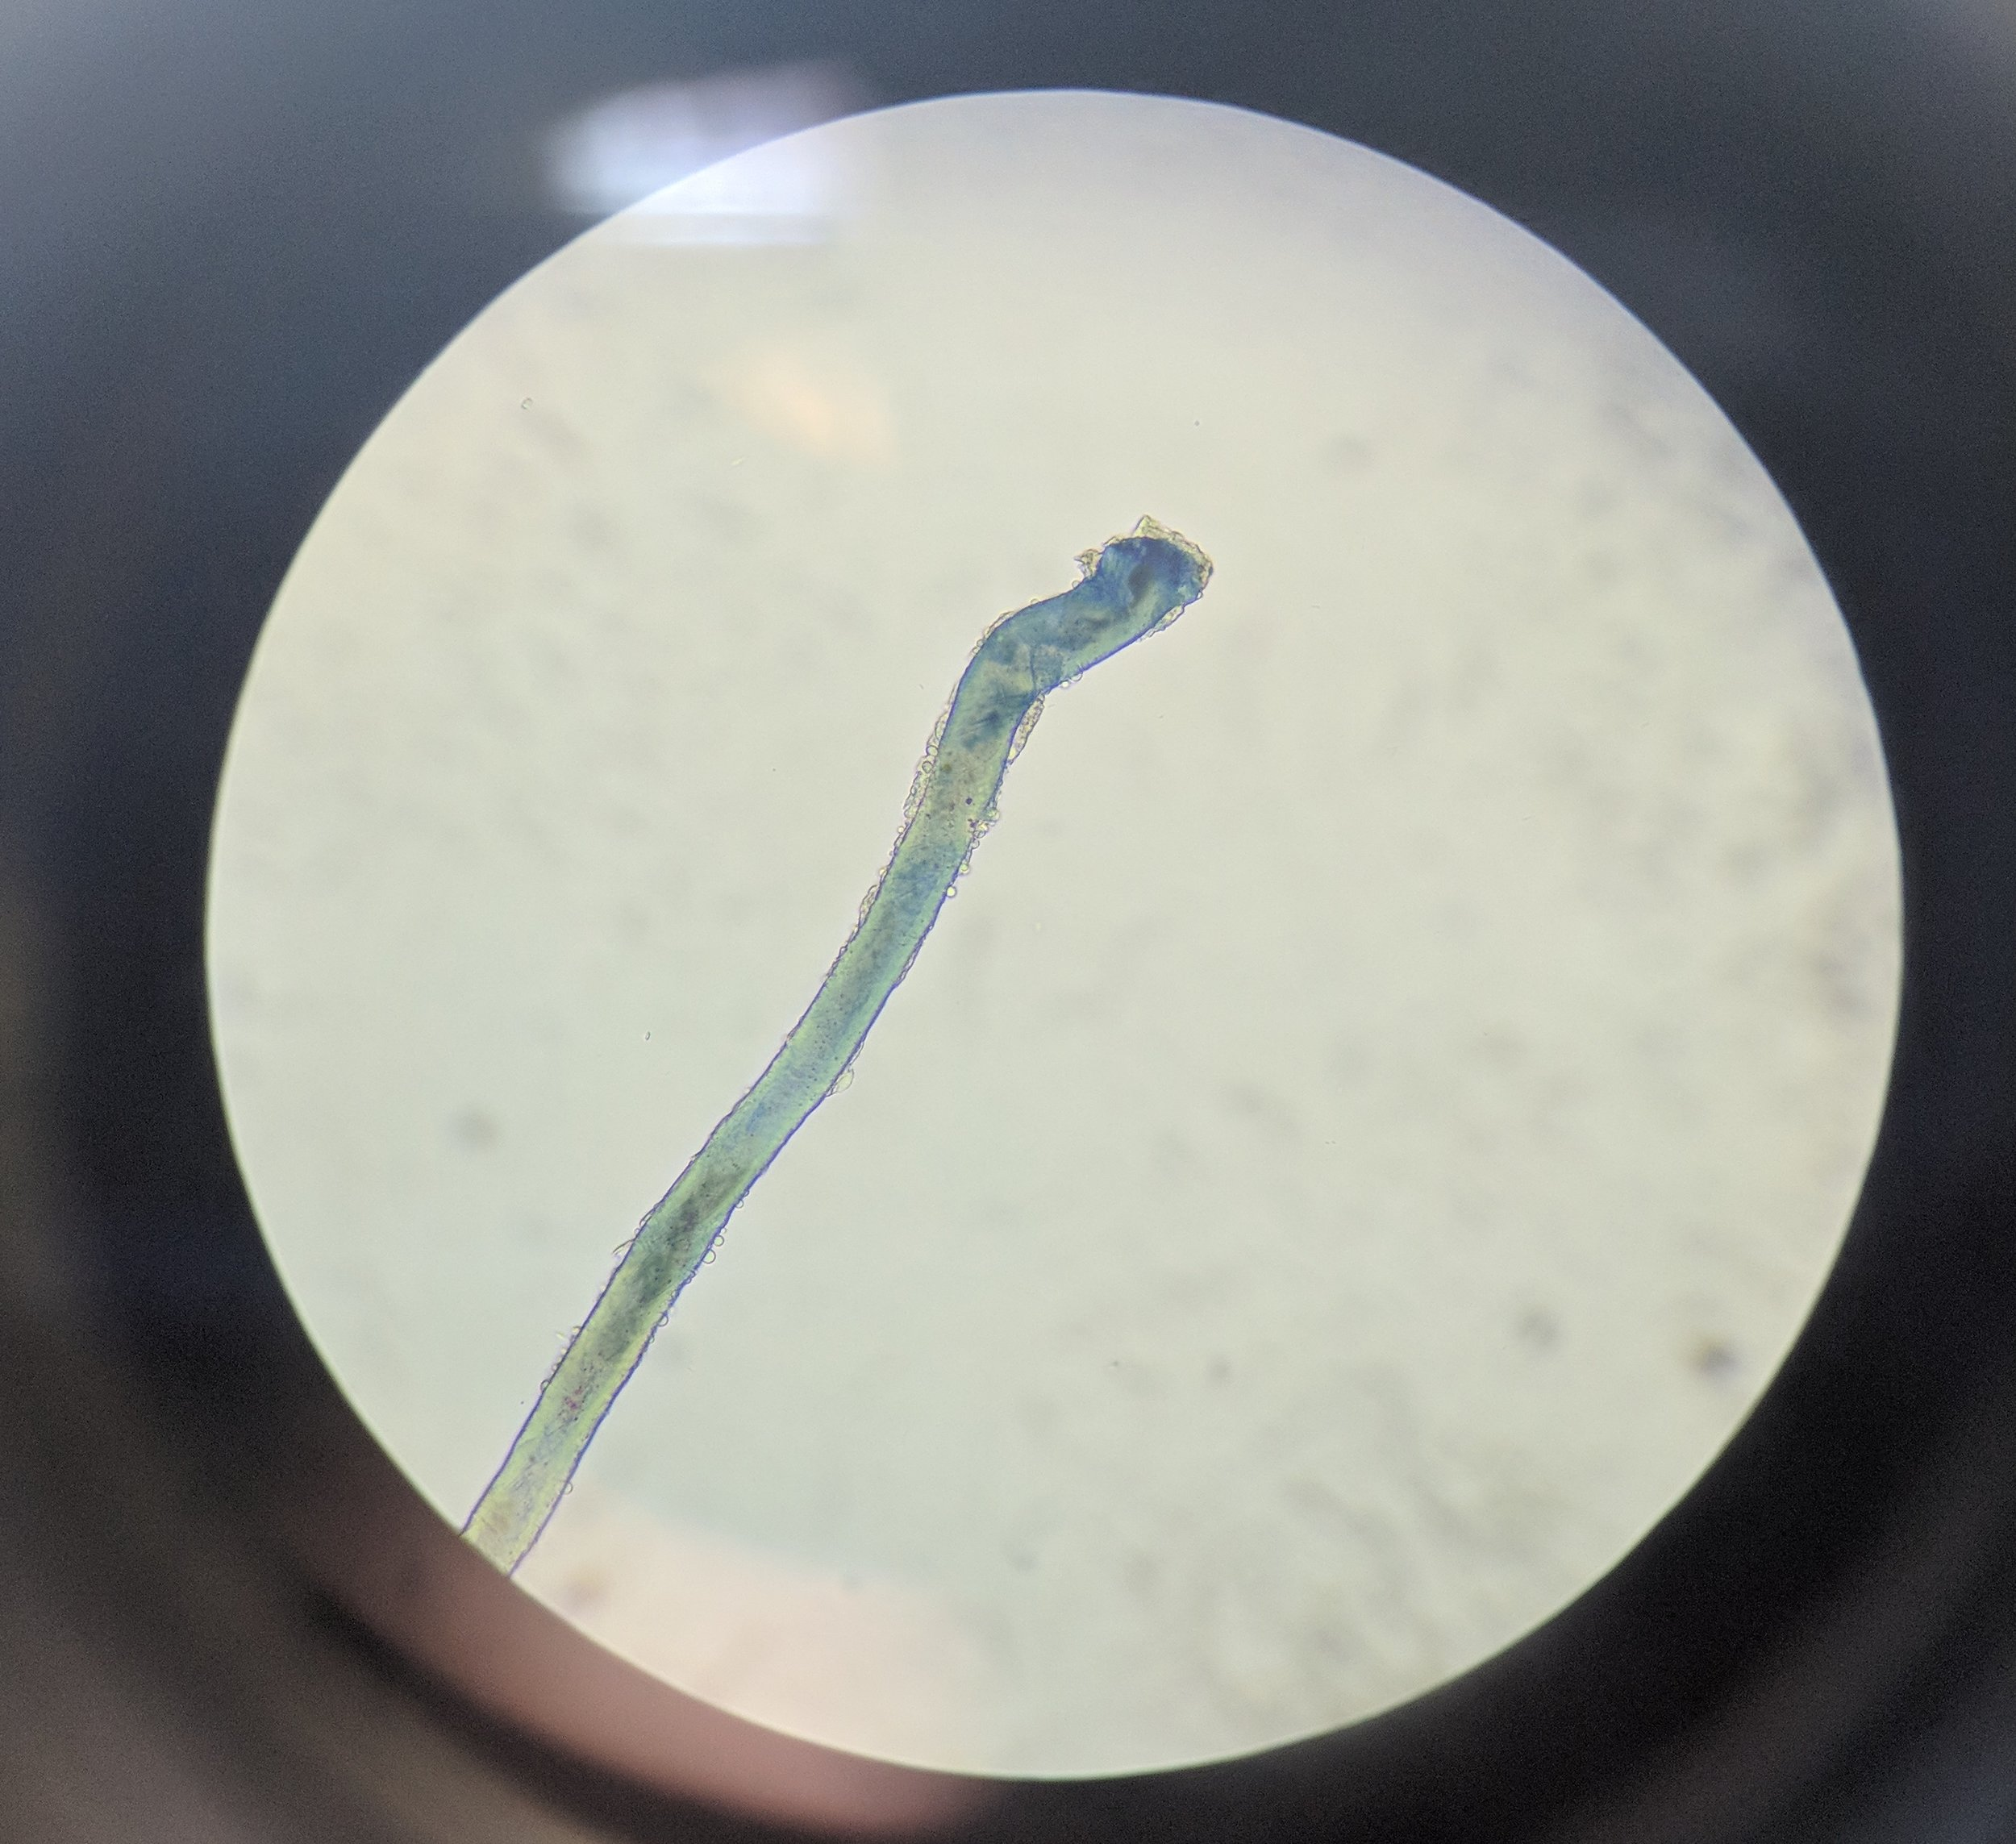 Microscope image of a microbe in a specimen collected from one of our engineered systems.